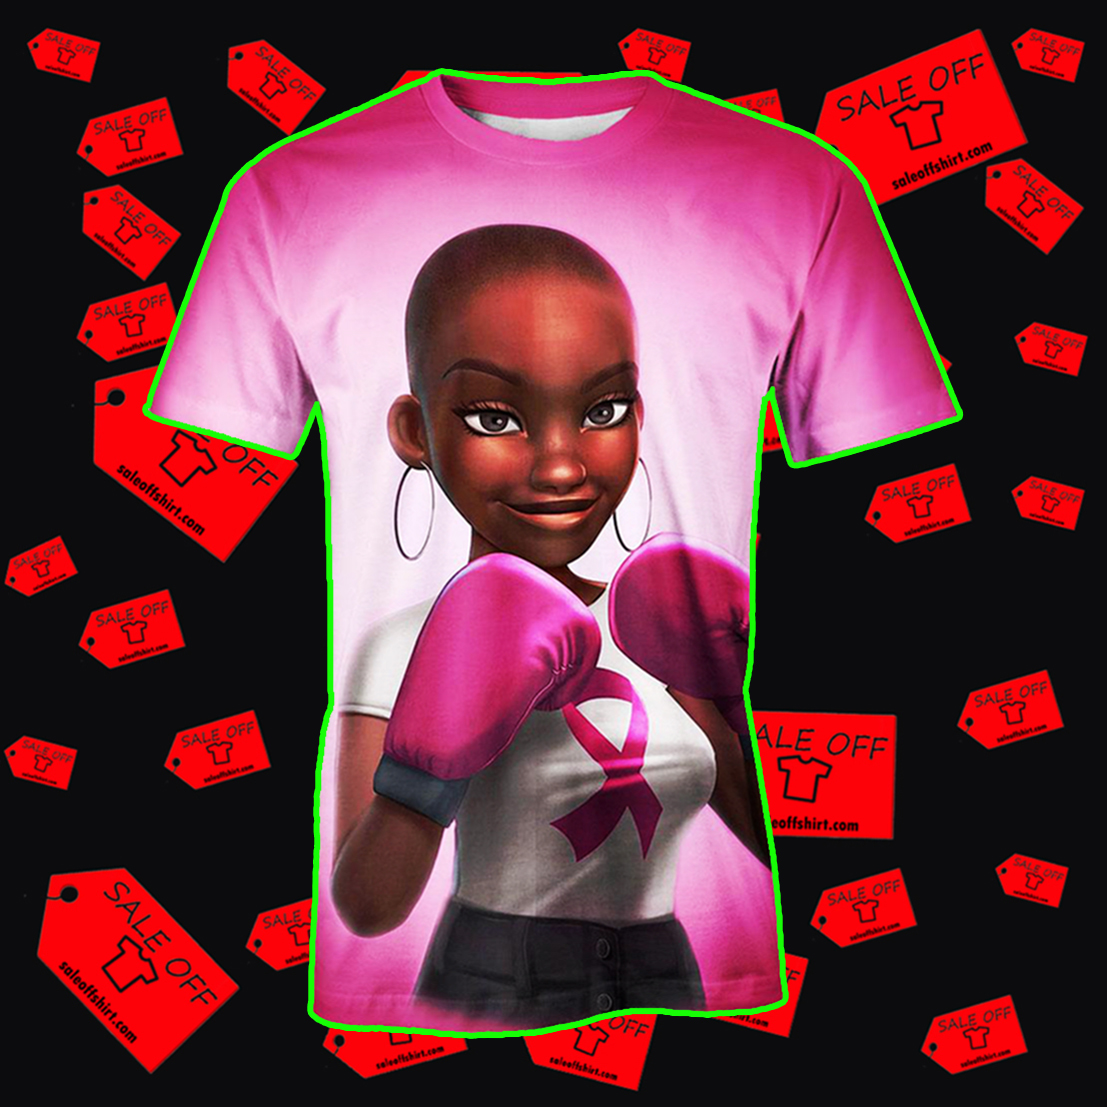 Black Girl Pink Warrior October Breast Cancer Awareness Hoodie 3D, T-shirt 3D, Sweatshirt 3D - T-shirt 3D